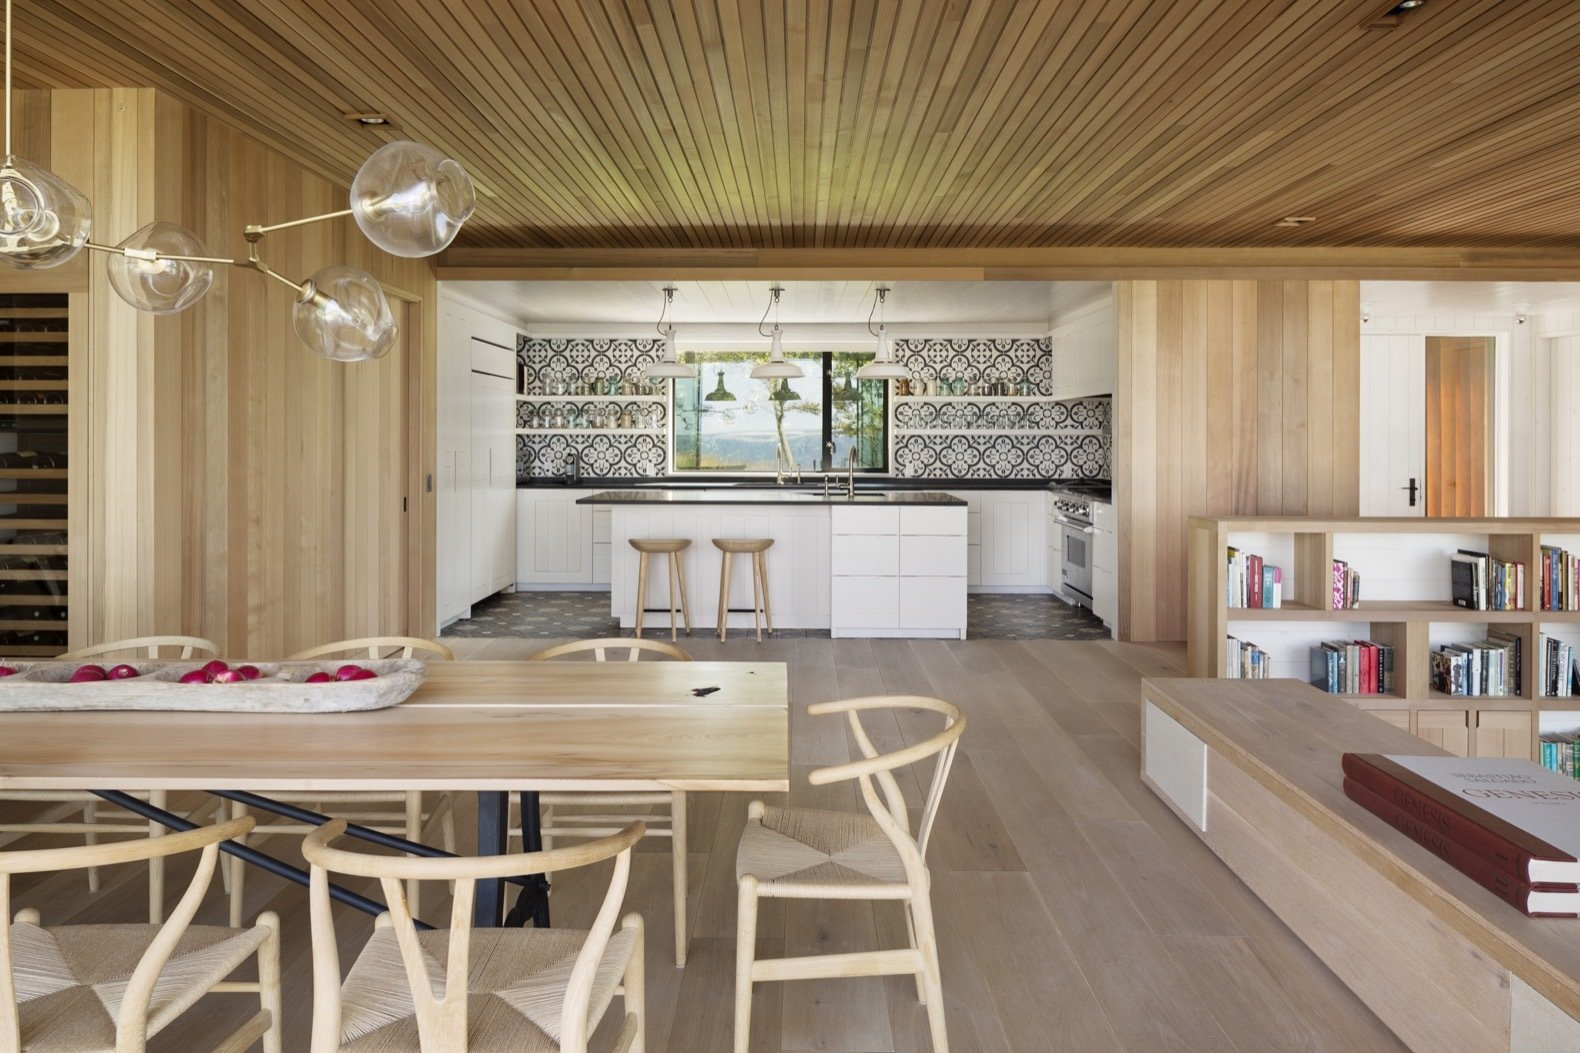 Dining, Accent, Medium Hardwood, Pendant, Table, and Chair Enveloped in cedar and reclaimed white oak, the interiors exude a sense of warmth.   Best Dining Accent Medium Hardwood Table Pendant Photos from This Hamptons Getaway Blends Seamlessly Into a Lush Landscape